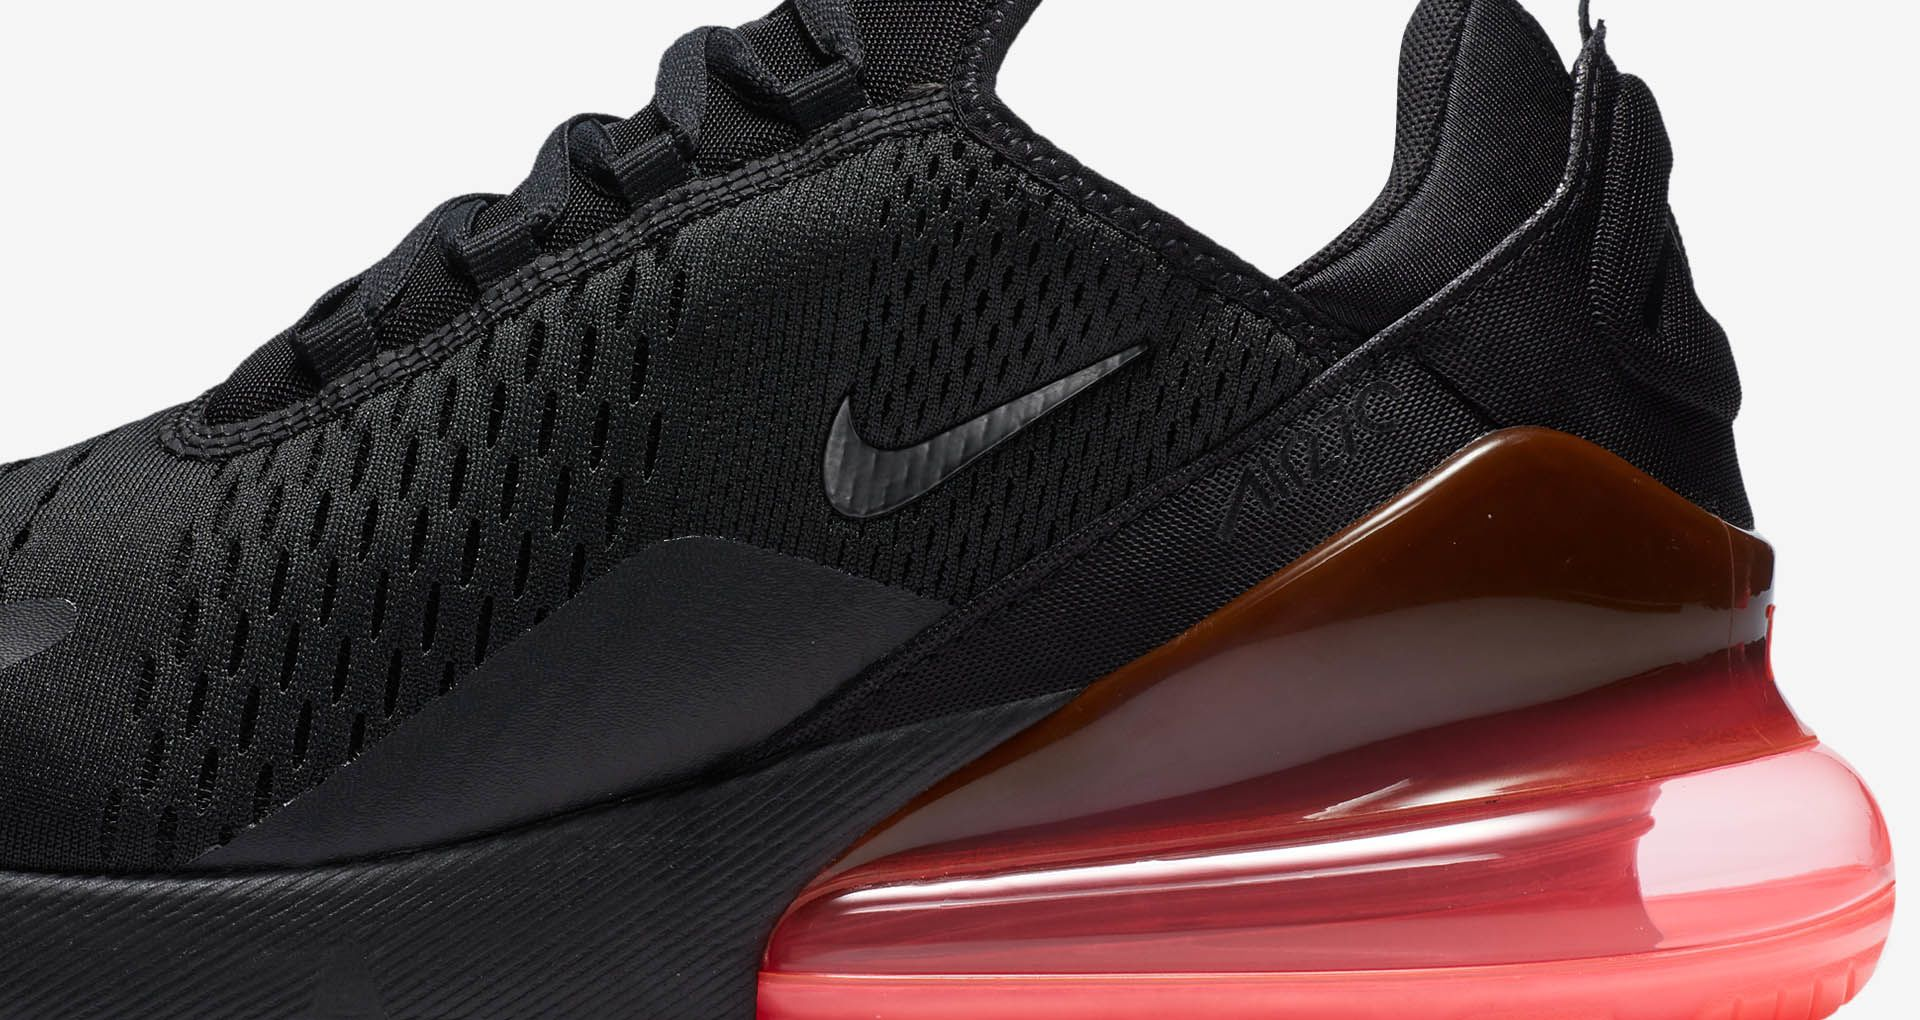 Nike Air Max 270 'Black & Hot Punch' Release Date. Nike SNKRS